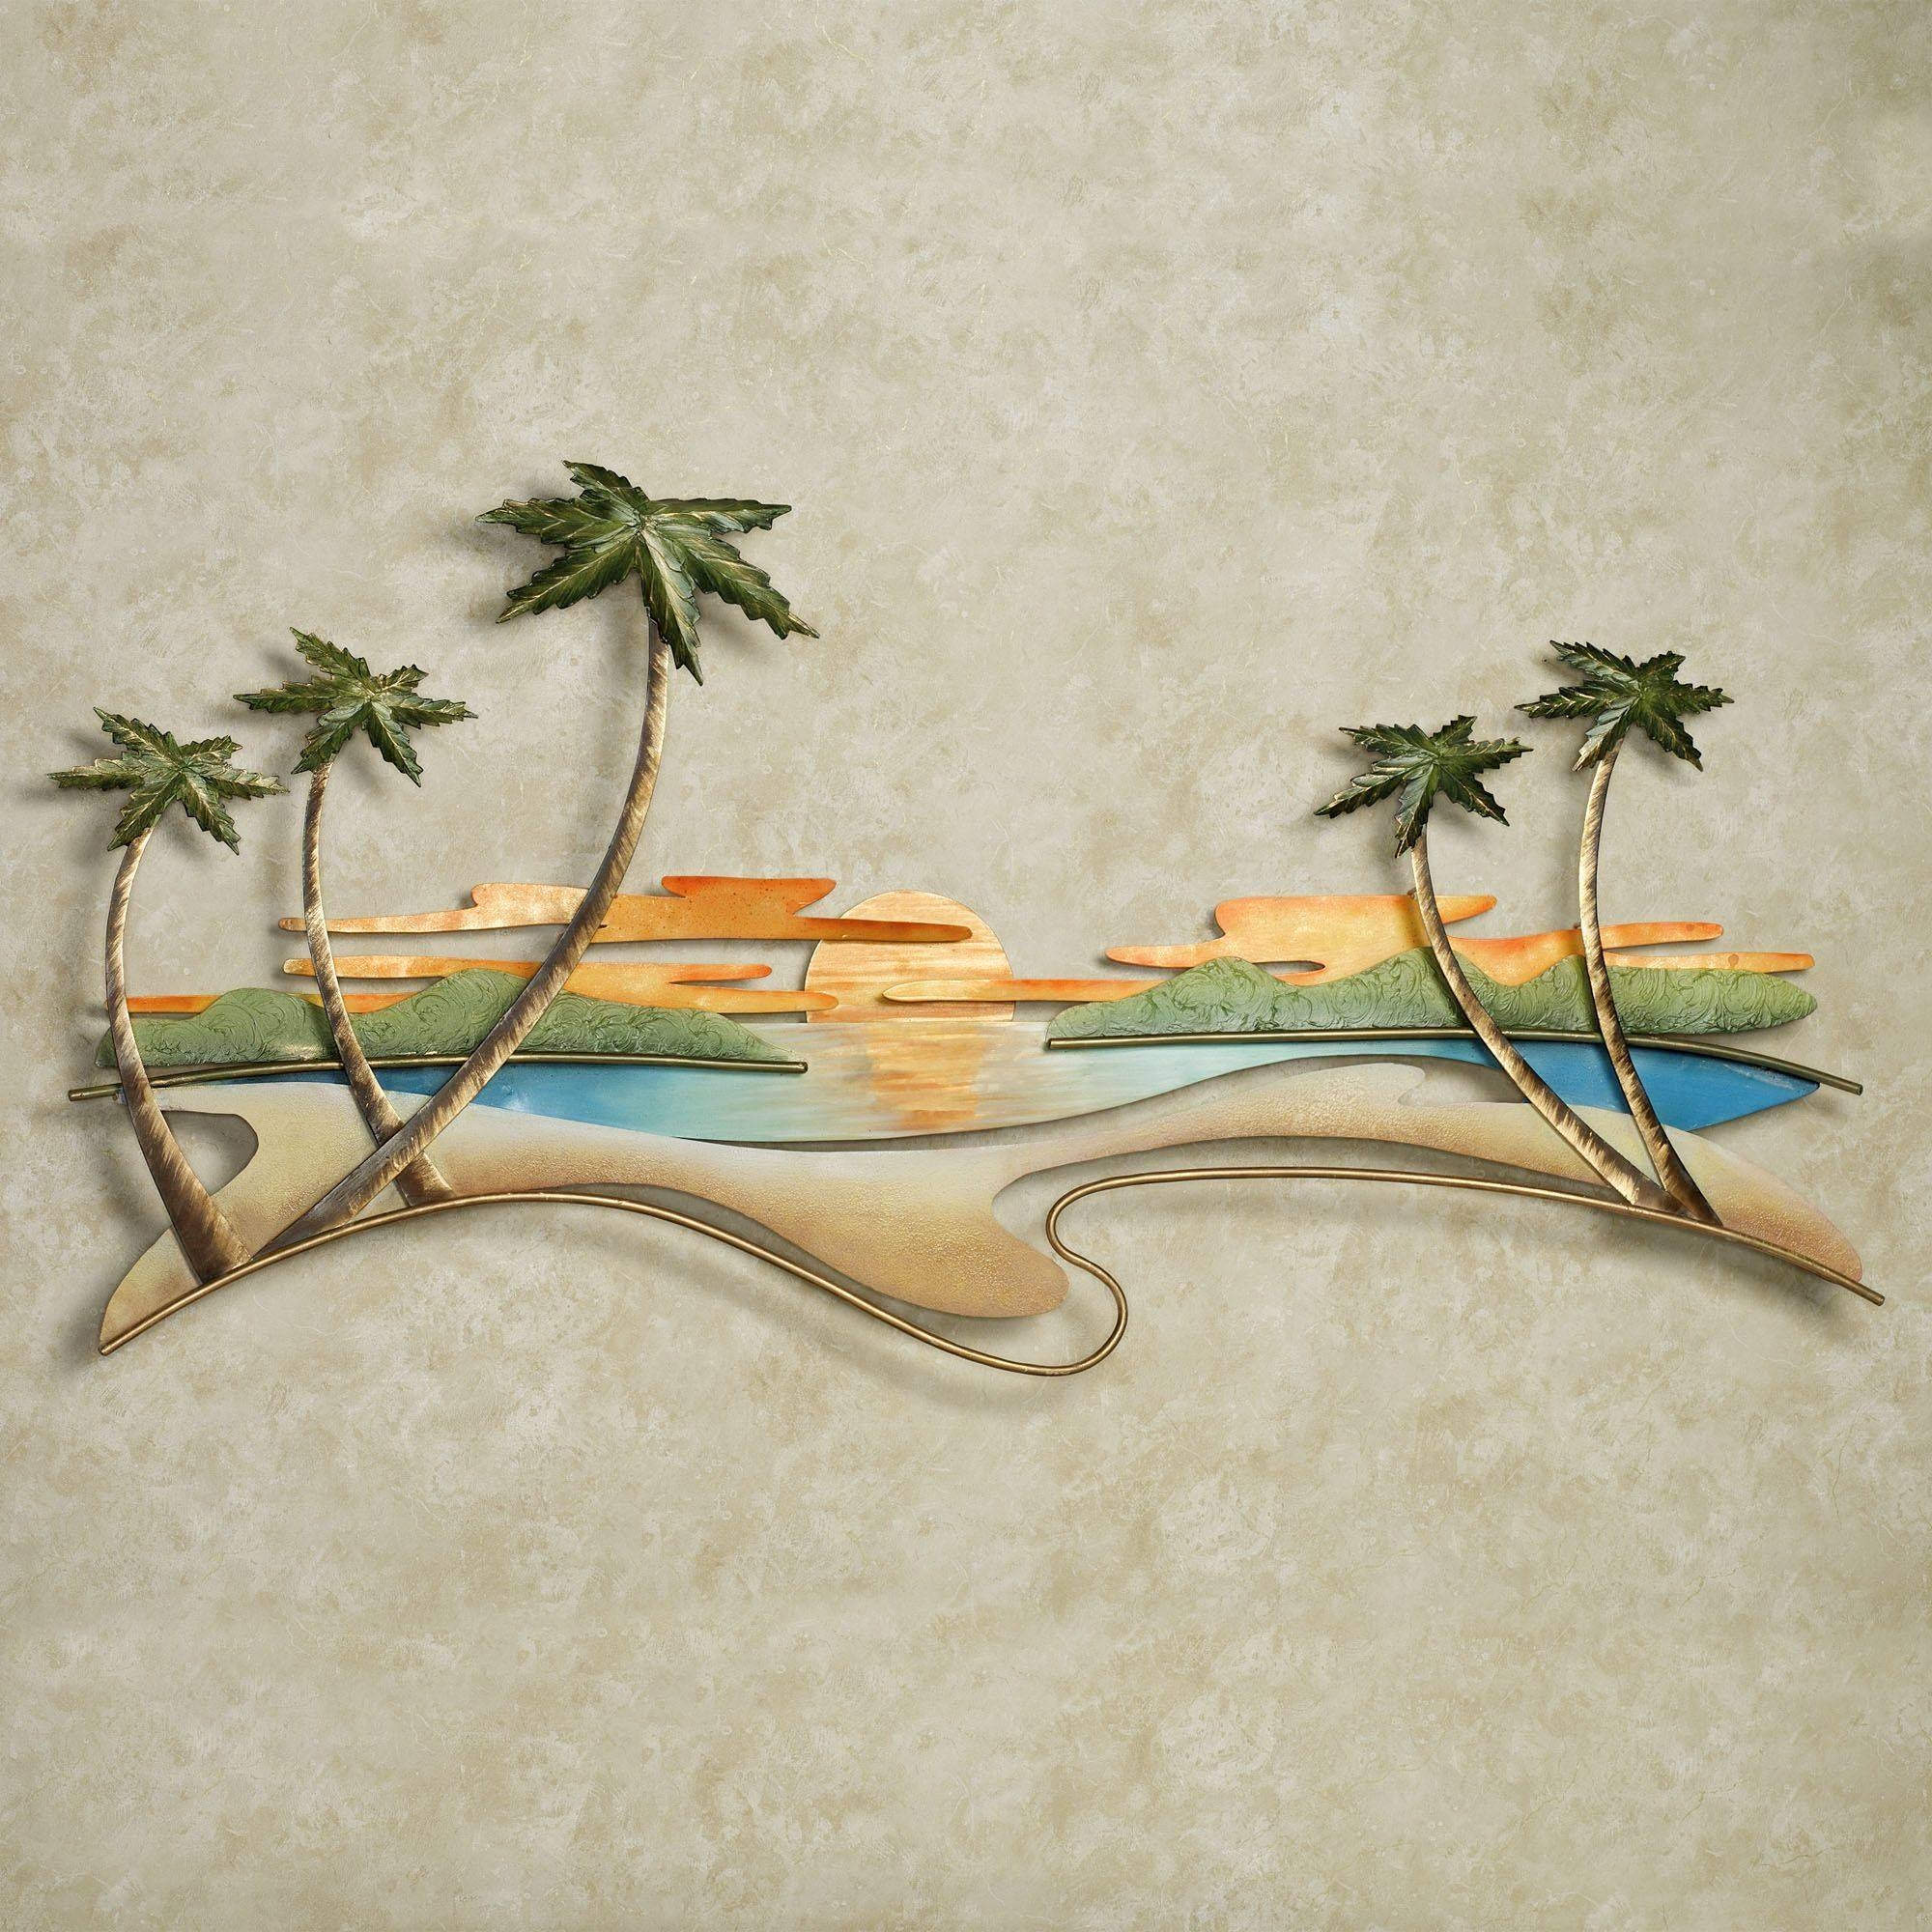 Caribbean Sunset Metal Wall Sculpturejasonw Studios Pertaining To 2017 Caribbean Metal Wall Art (View 6 of 20)